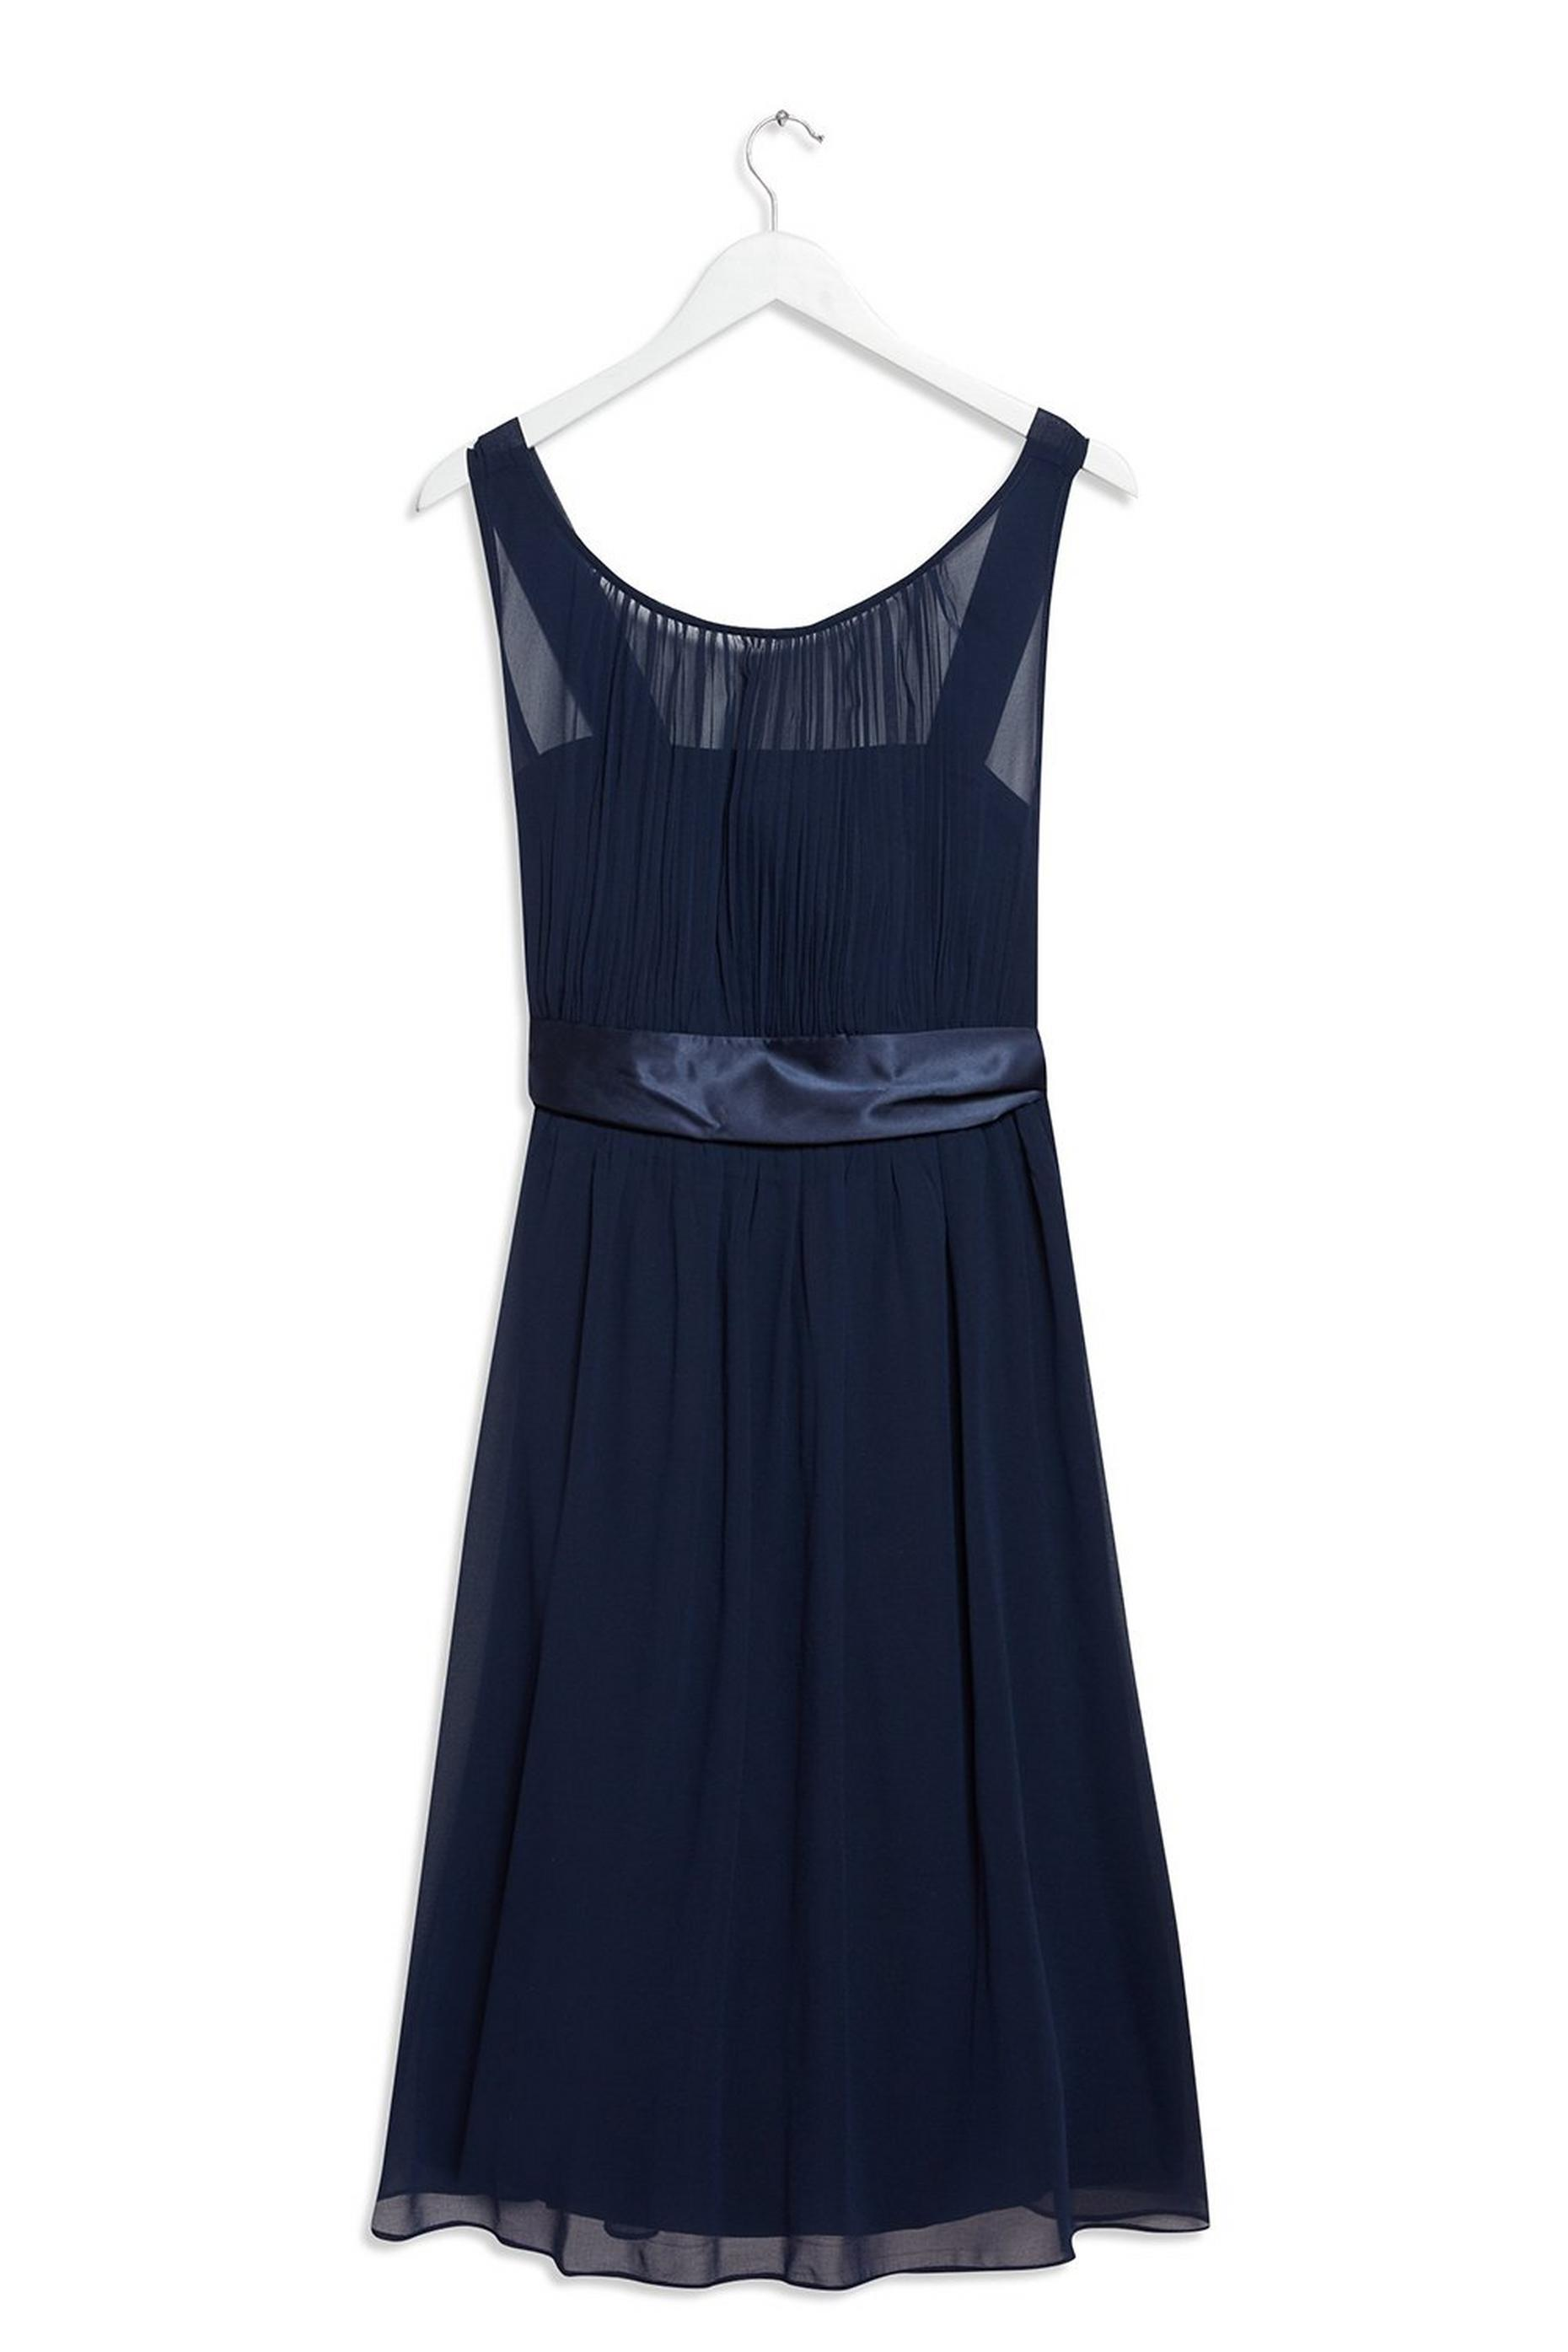 Navy Bethany Bridesmaid Midi Dress